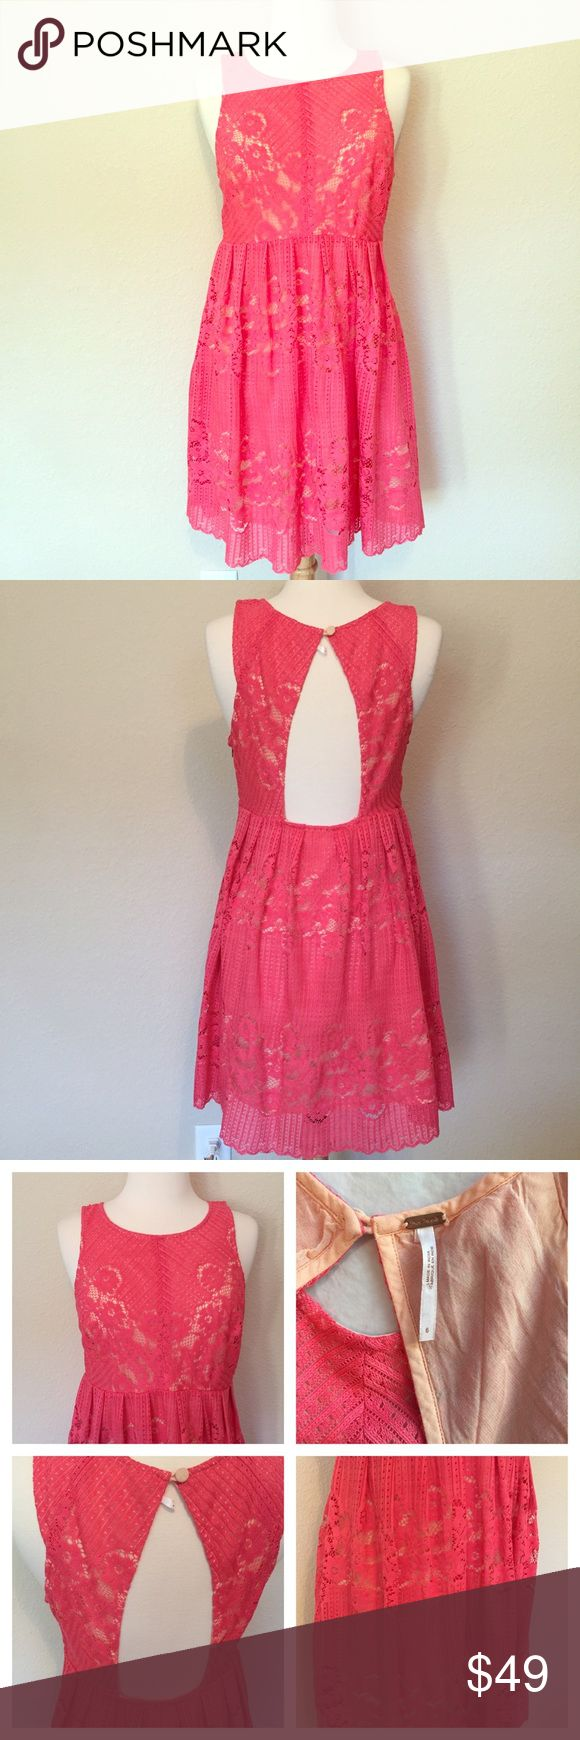 {Free People} Pink Lace Dress Keyhole Back Dress Adorable dress in excellent condition. Size 6. Bust: 34, waist: 30, length: 33. Side zip. Great for baby showers, weddings, and other more formal events :). No trades please, offers below 60% will be ignored and user will be blocked; Let's keep posh kind and respectful :) Free People Dresses Mini